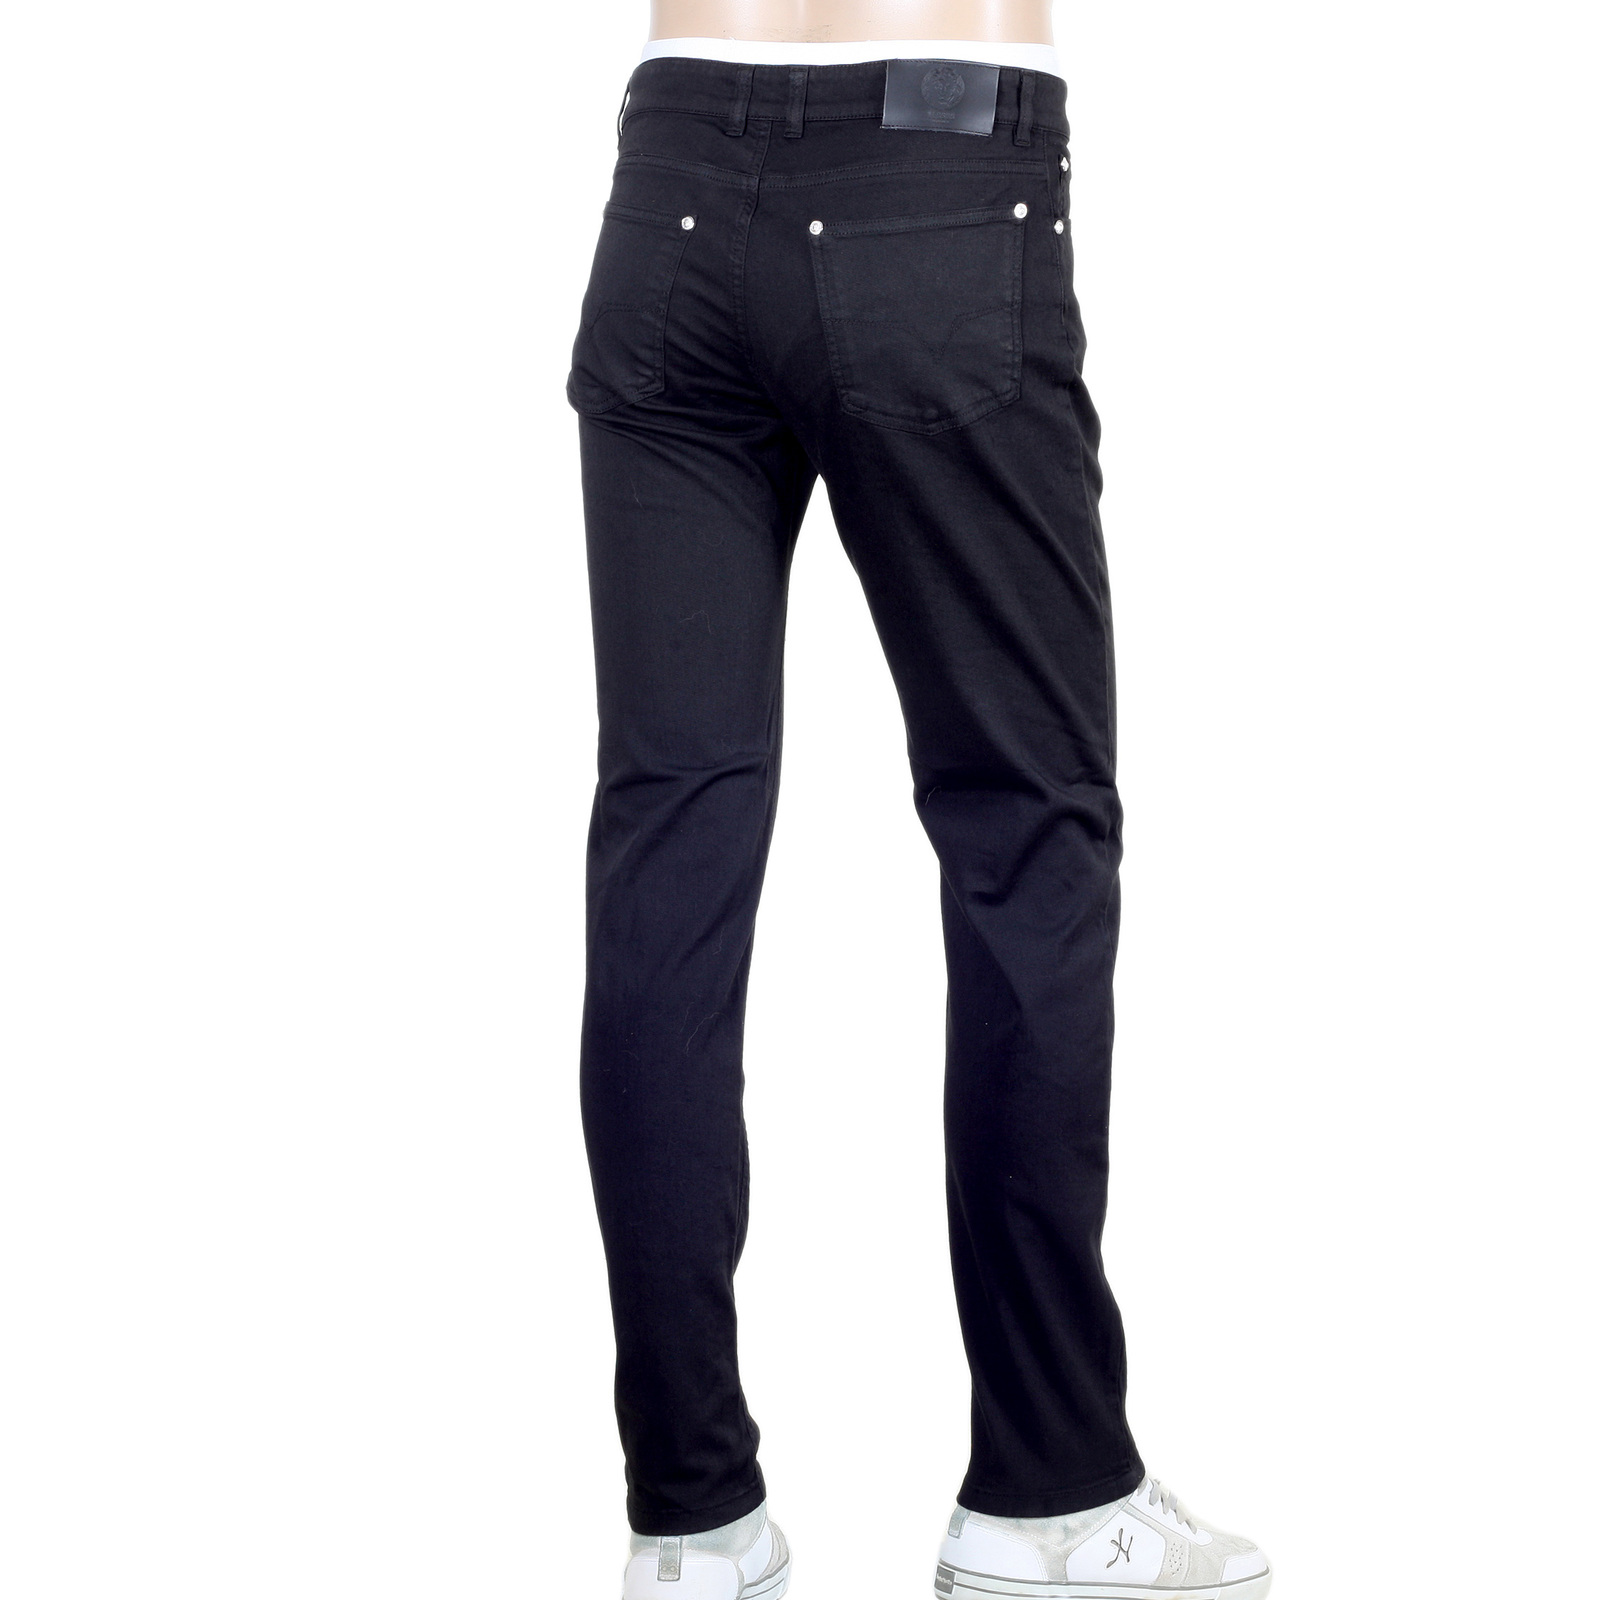 Mens Black Jeans with Silver Lion Studs by Versace UK